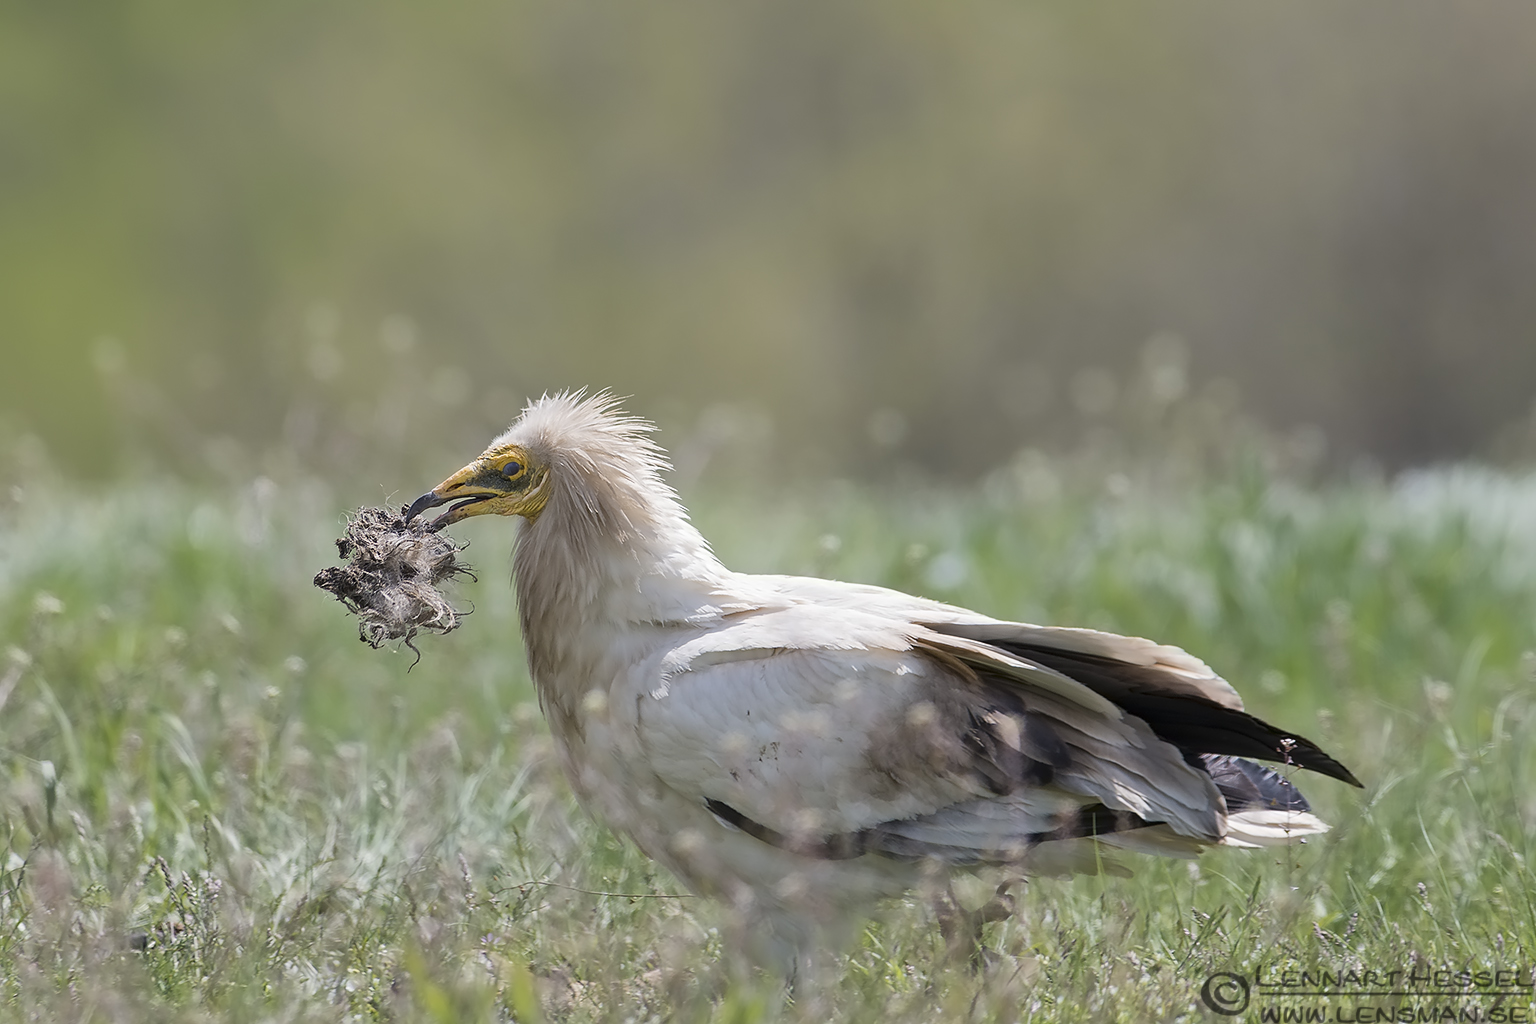 Egyptian Vulture collecting nest material in Bulgaria